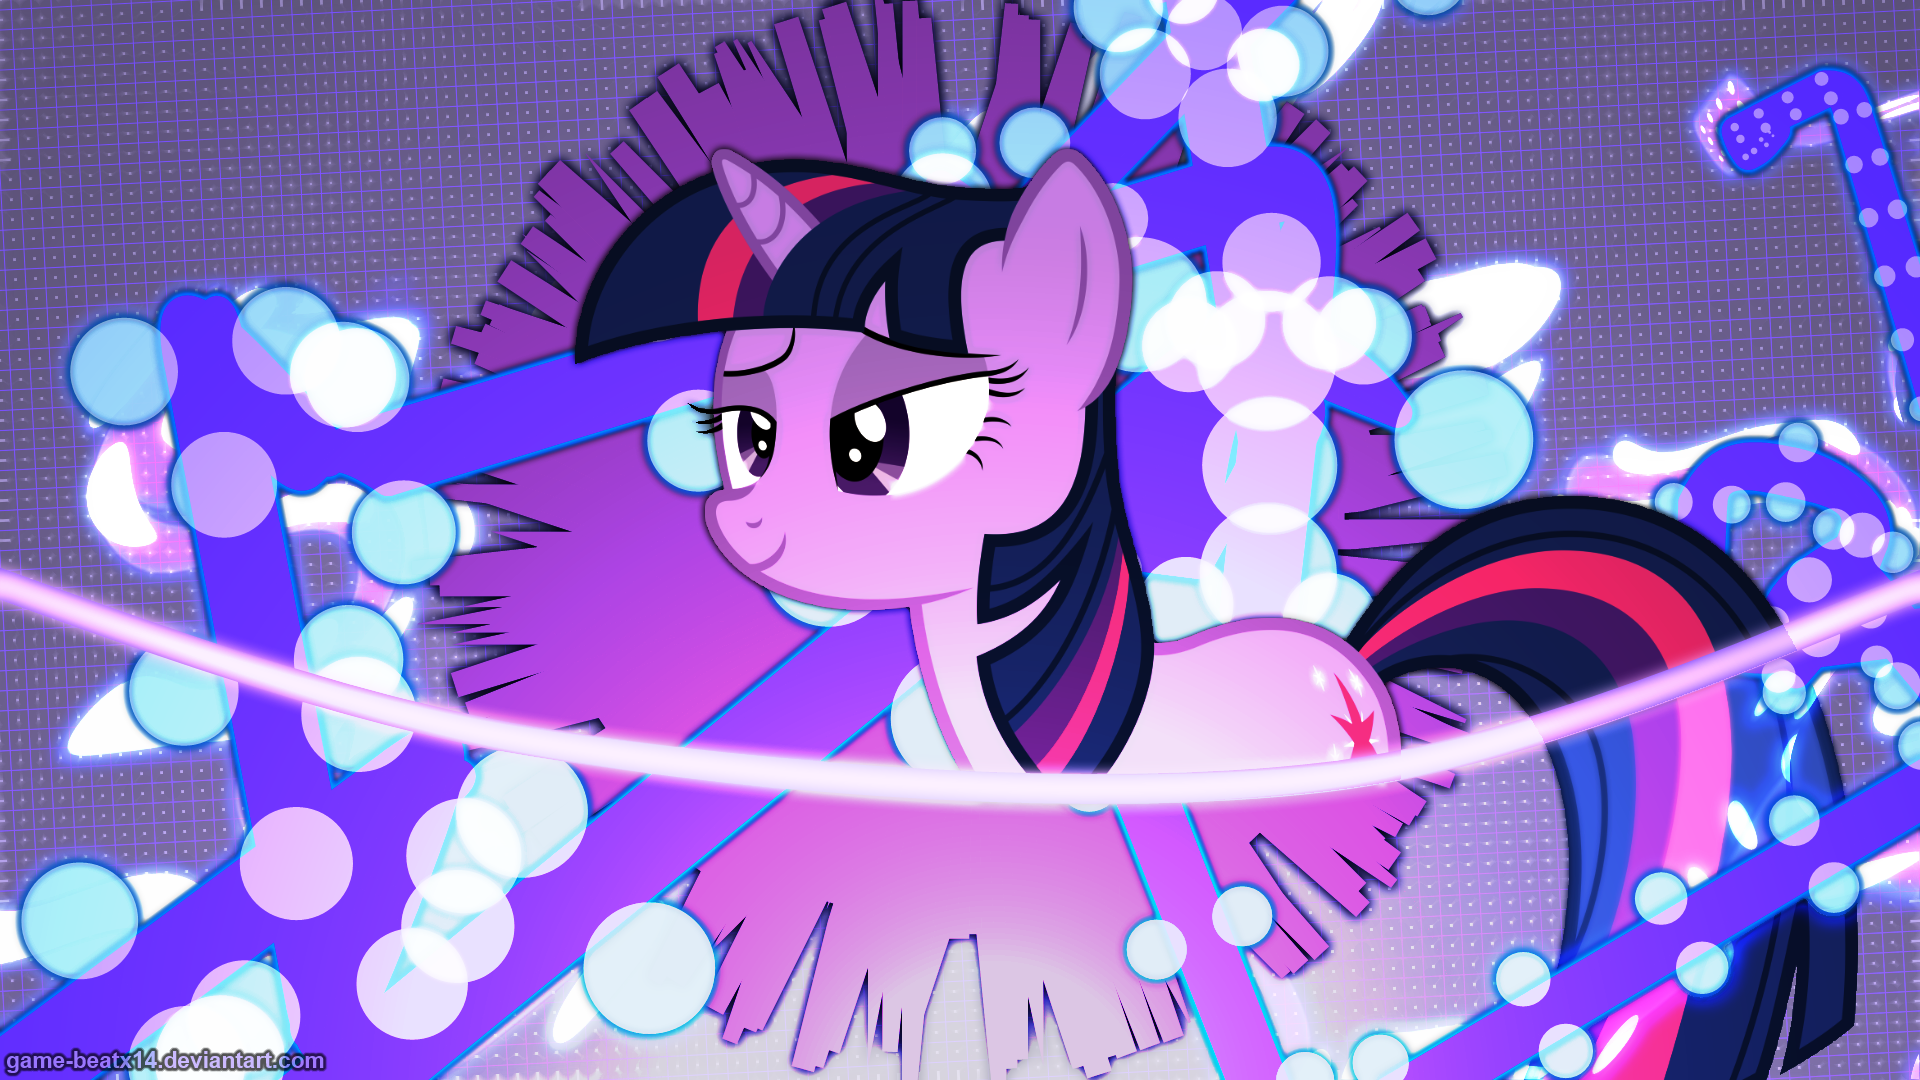 Twilight Sparkle Wallpaper 2 by Game-BeatX14